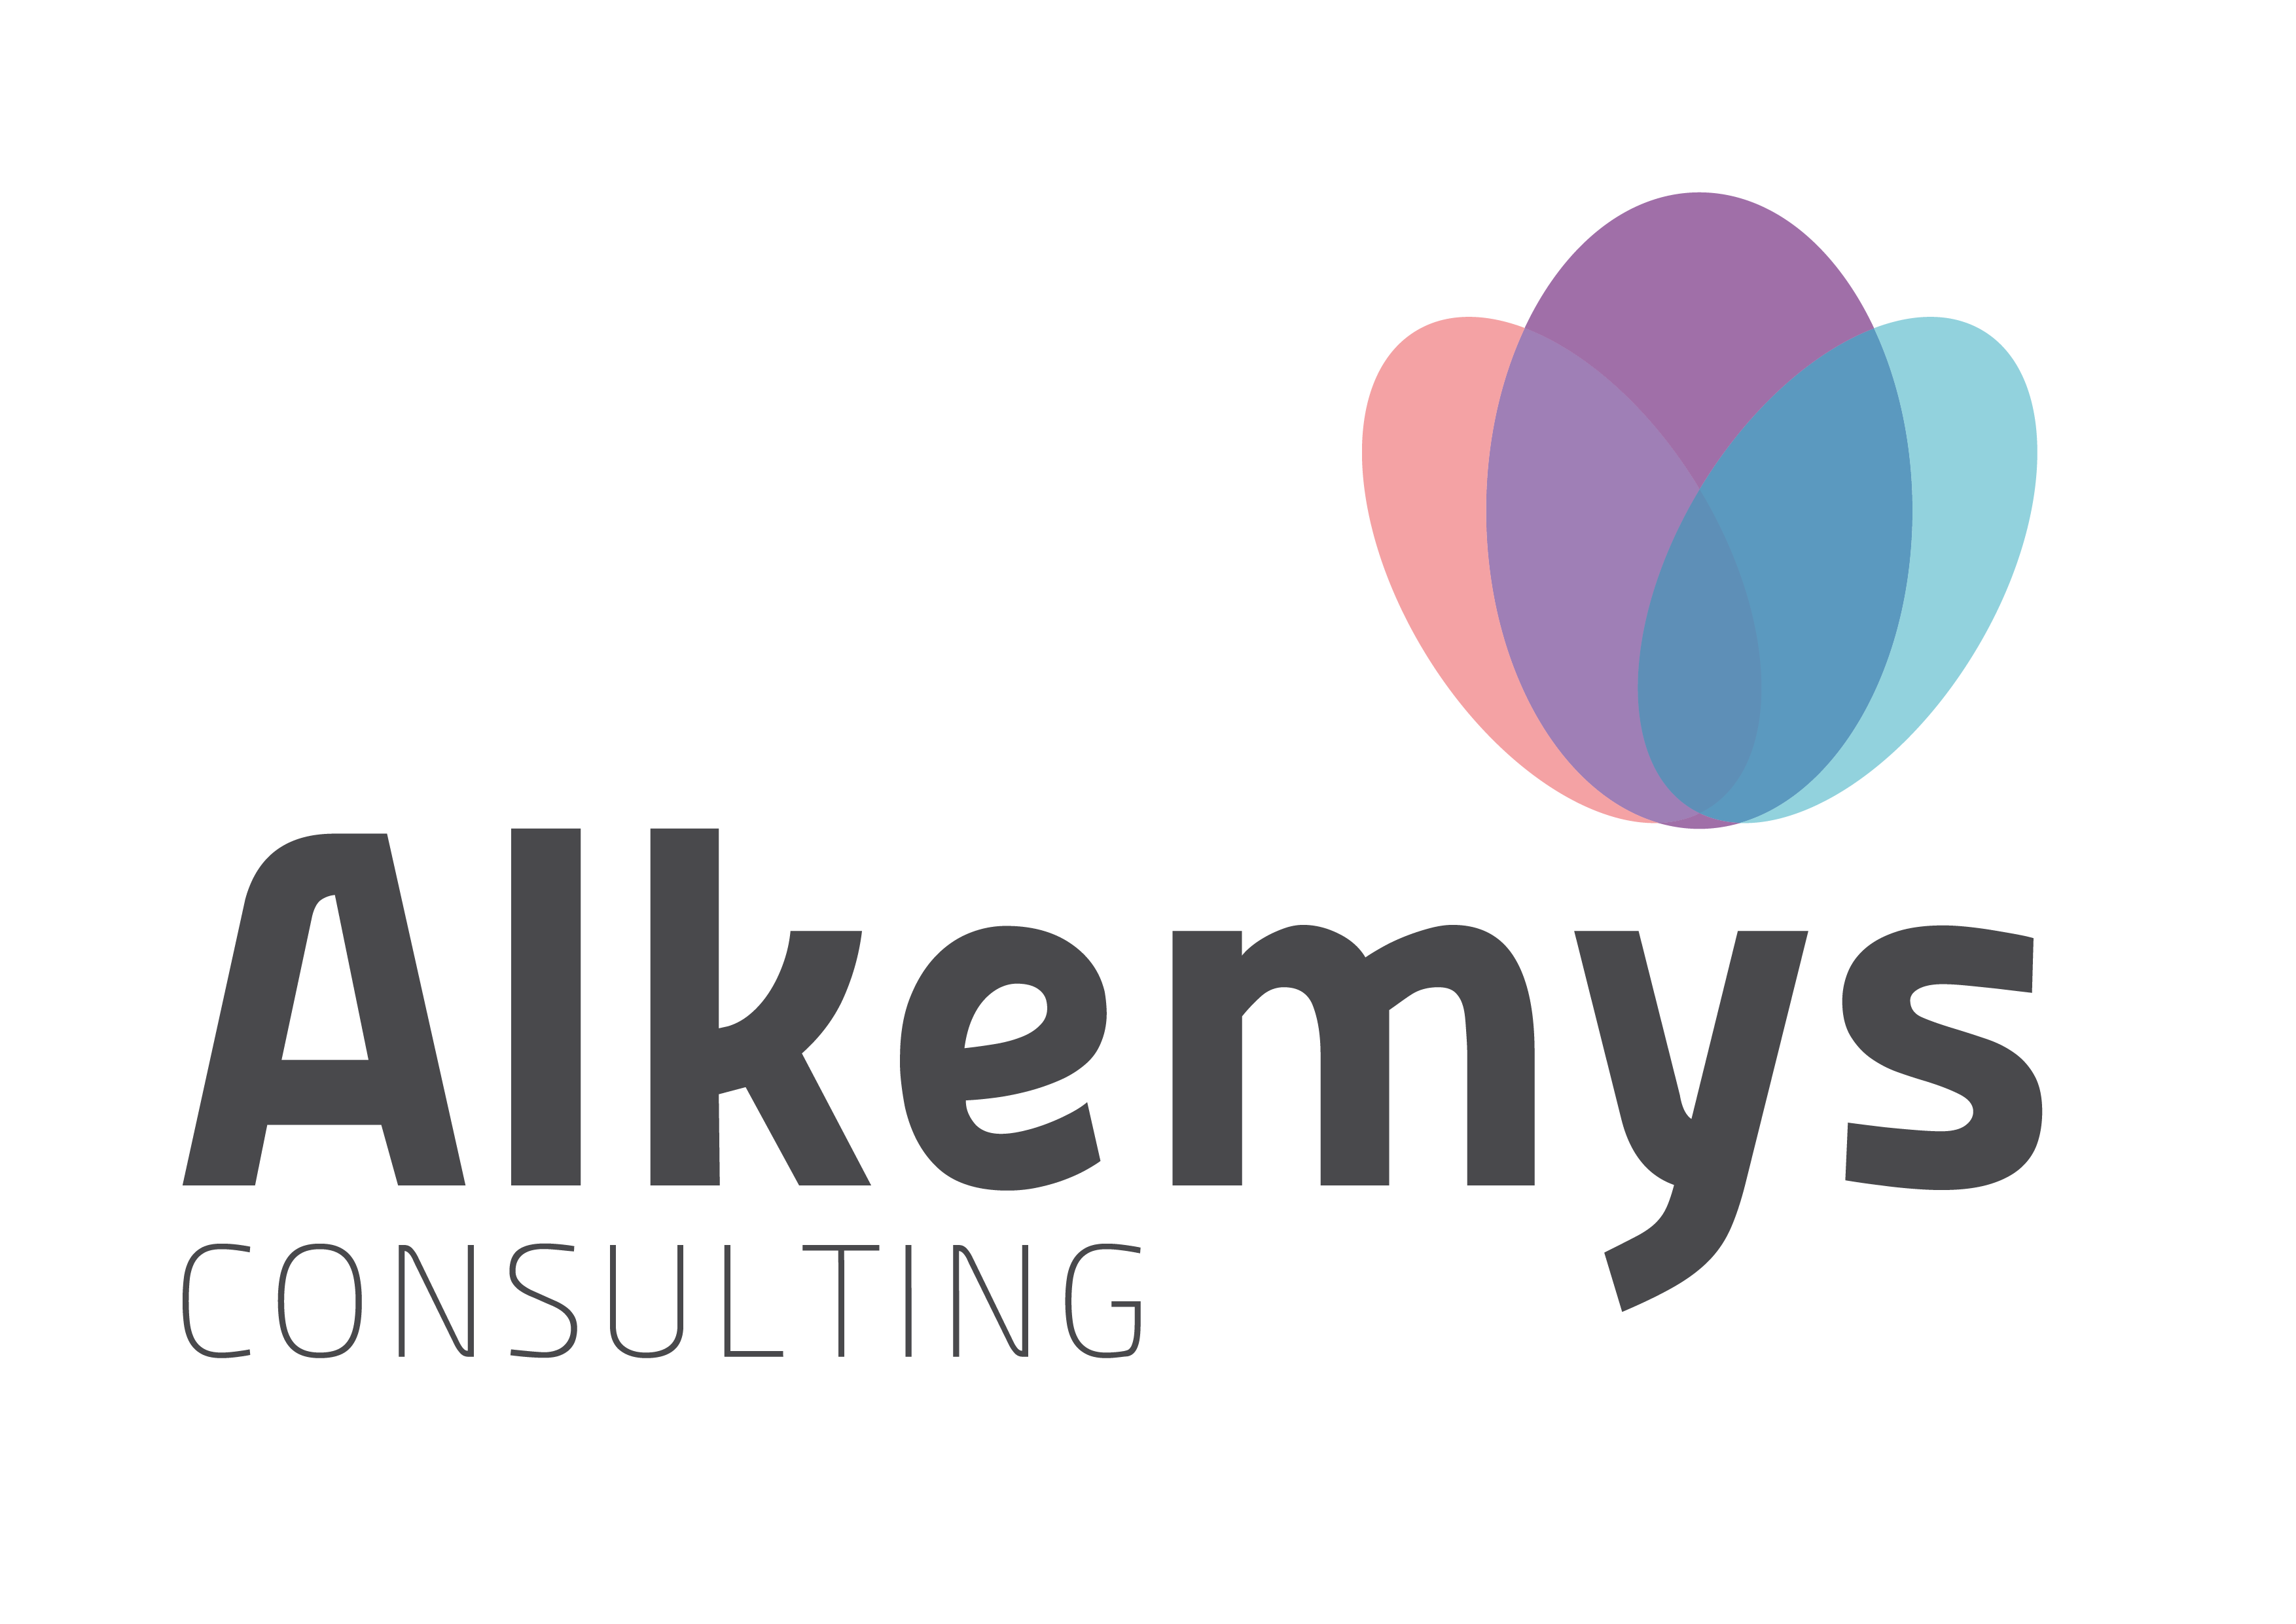 Alkemys Consulting